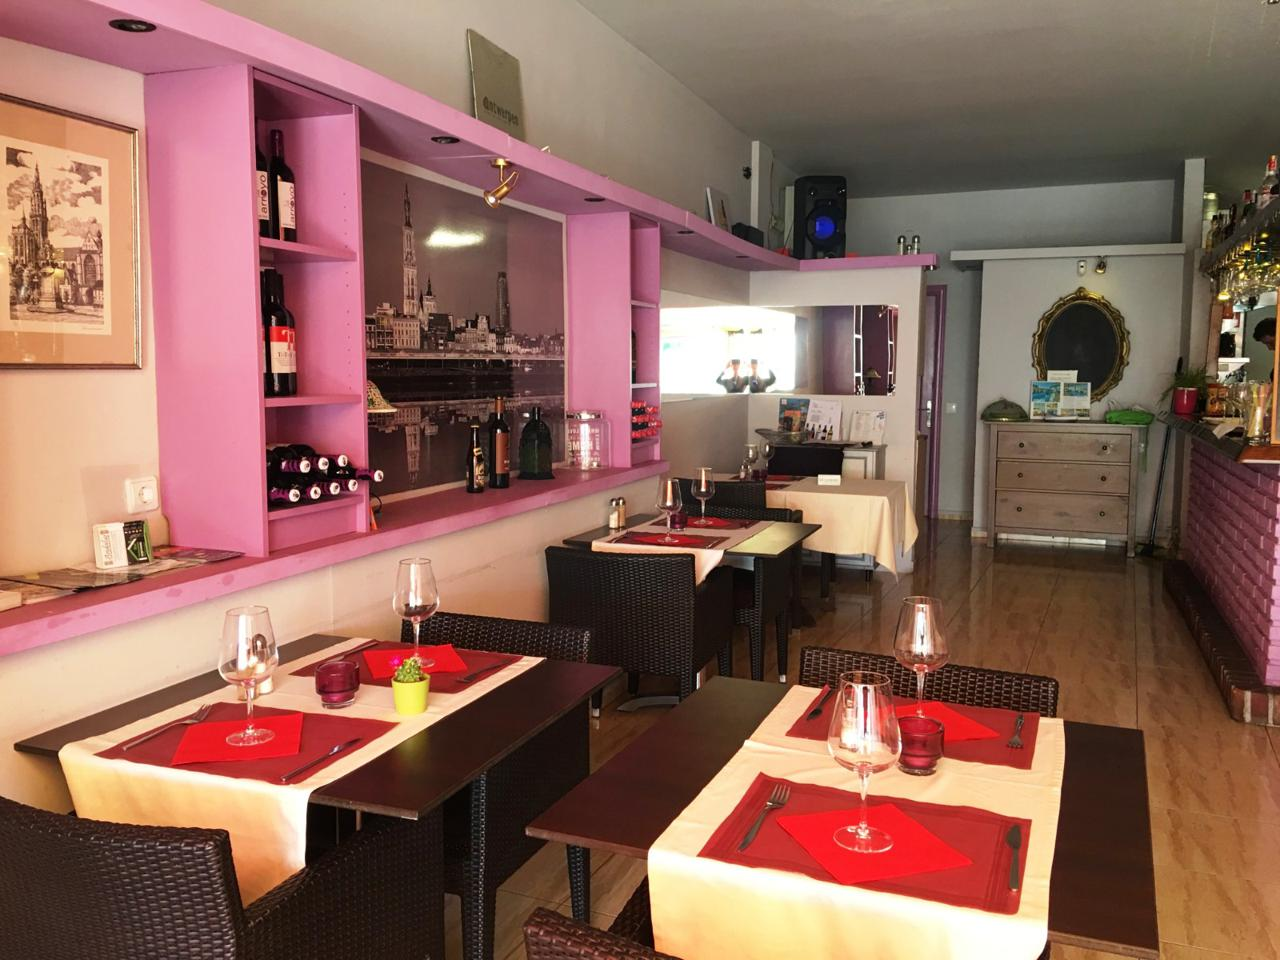 Business local for rent in Nerja